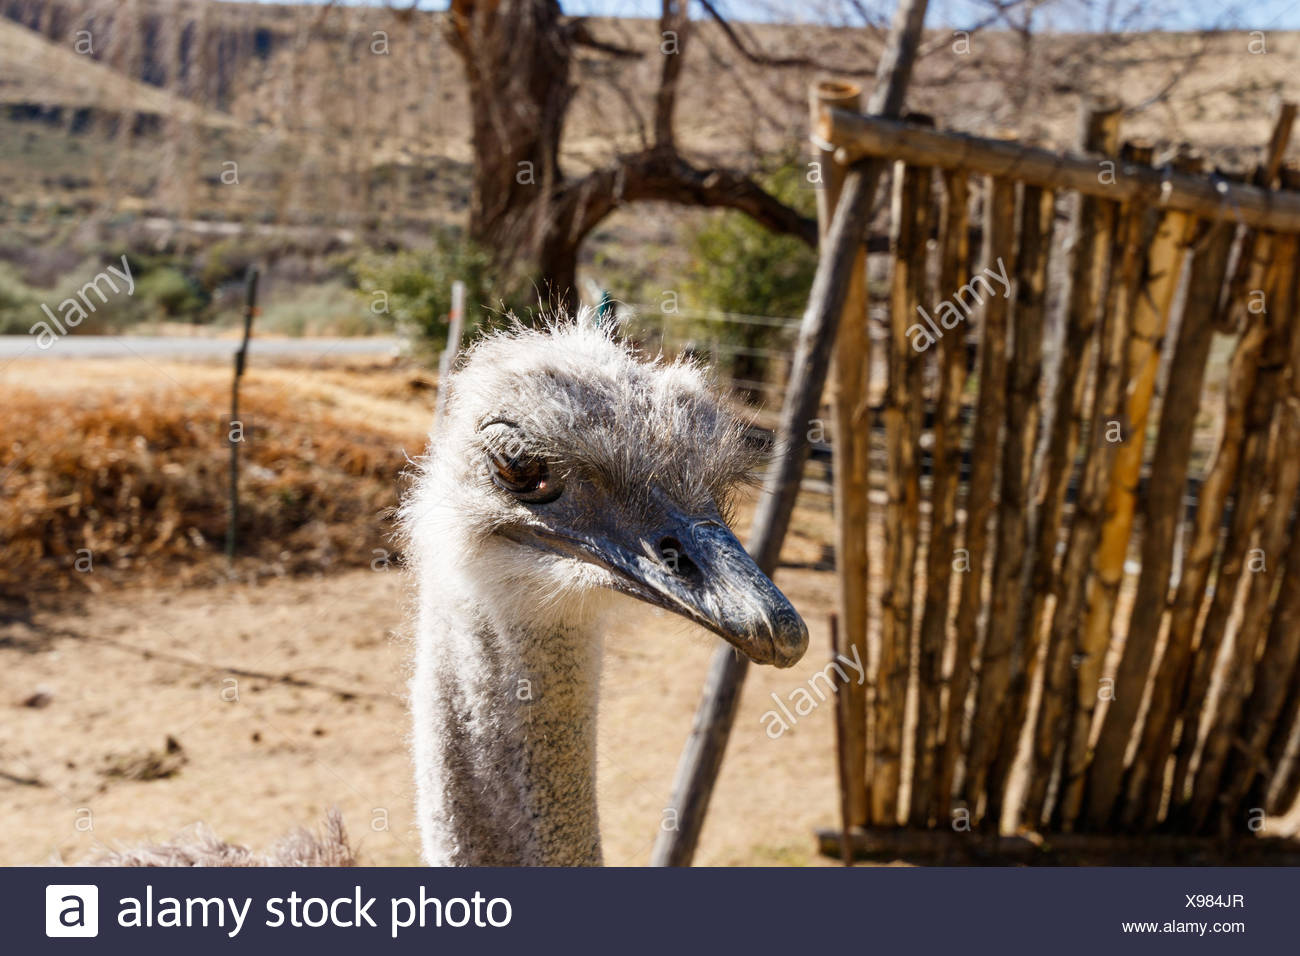 Ostrich Head down and taking a break - Stock Image